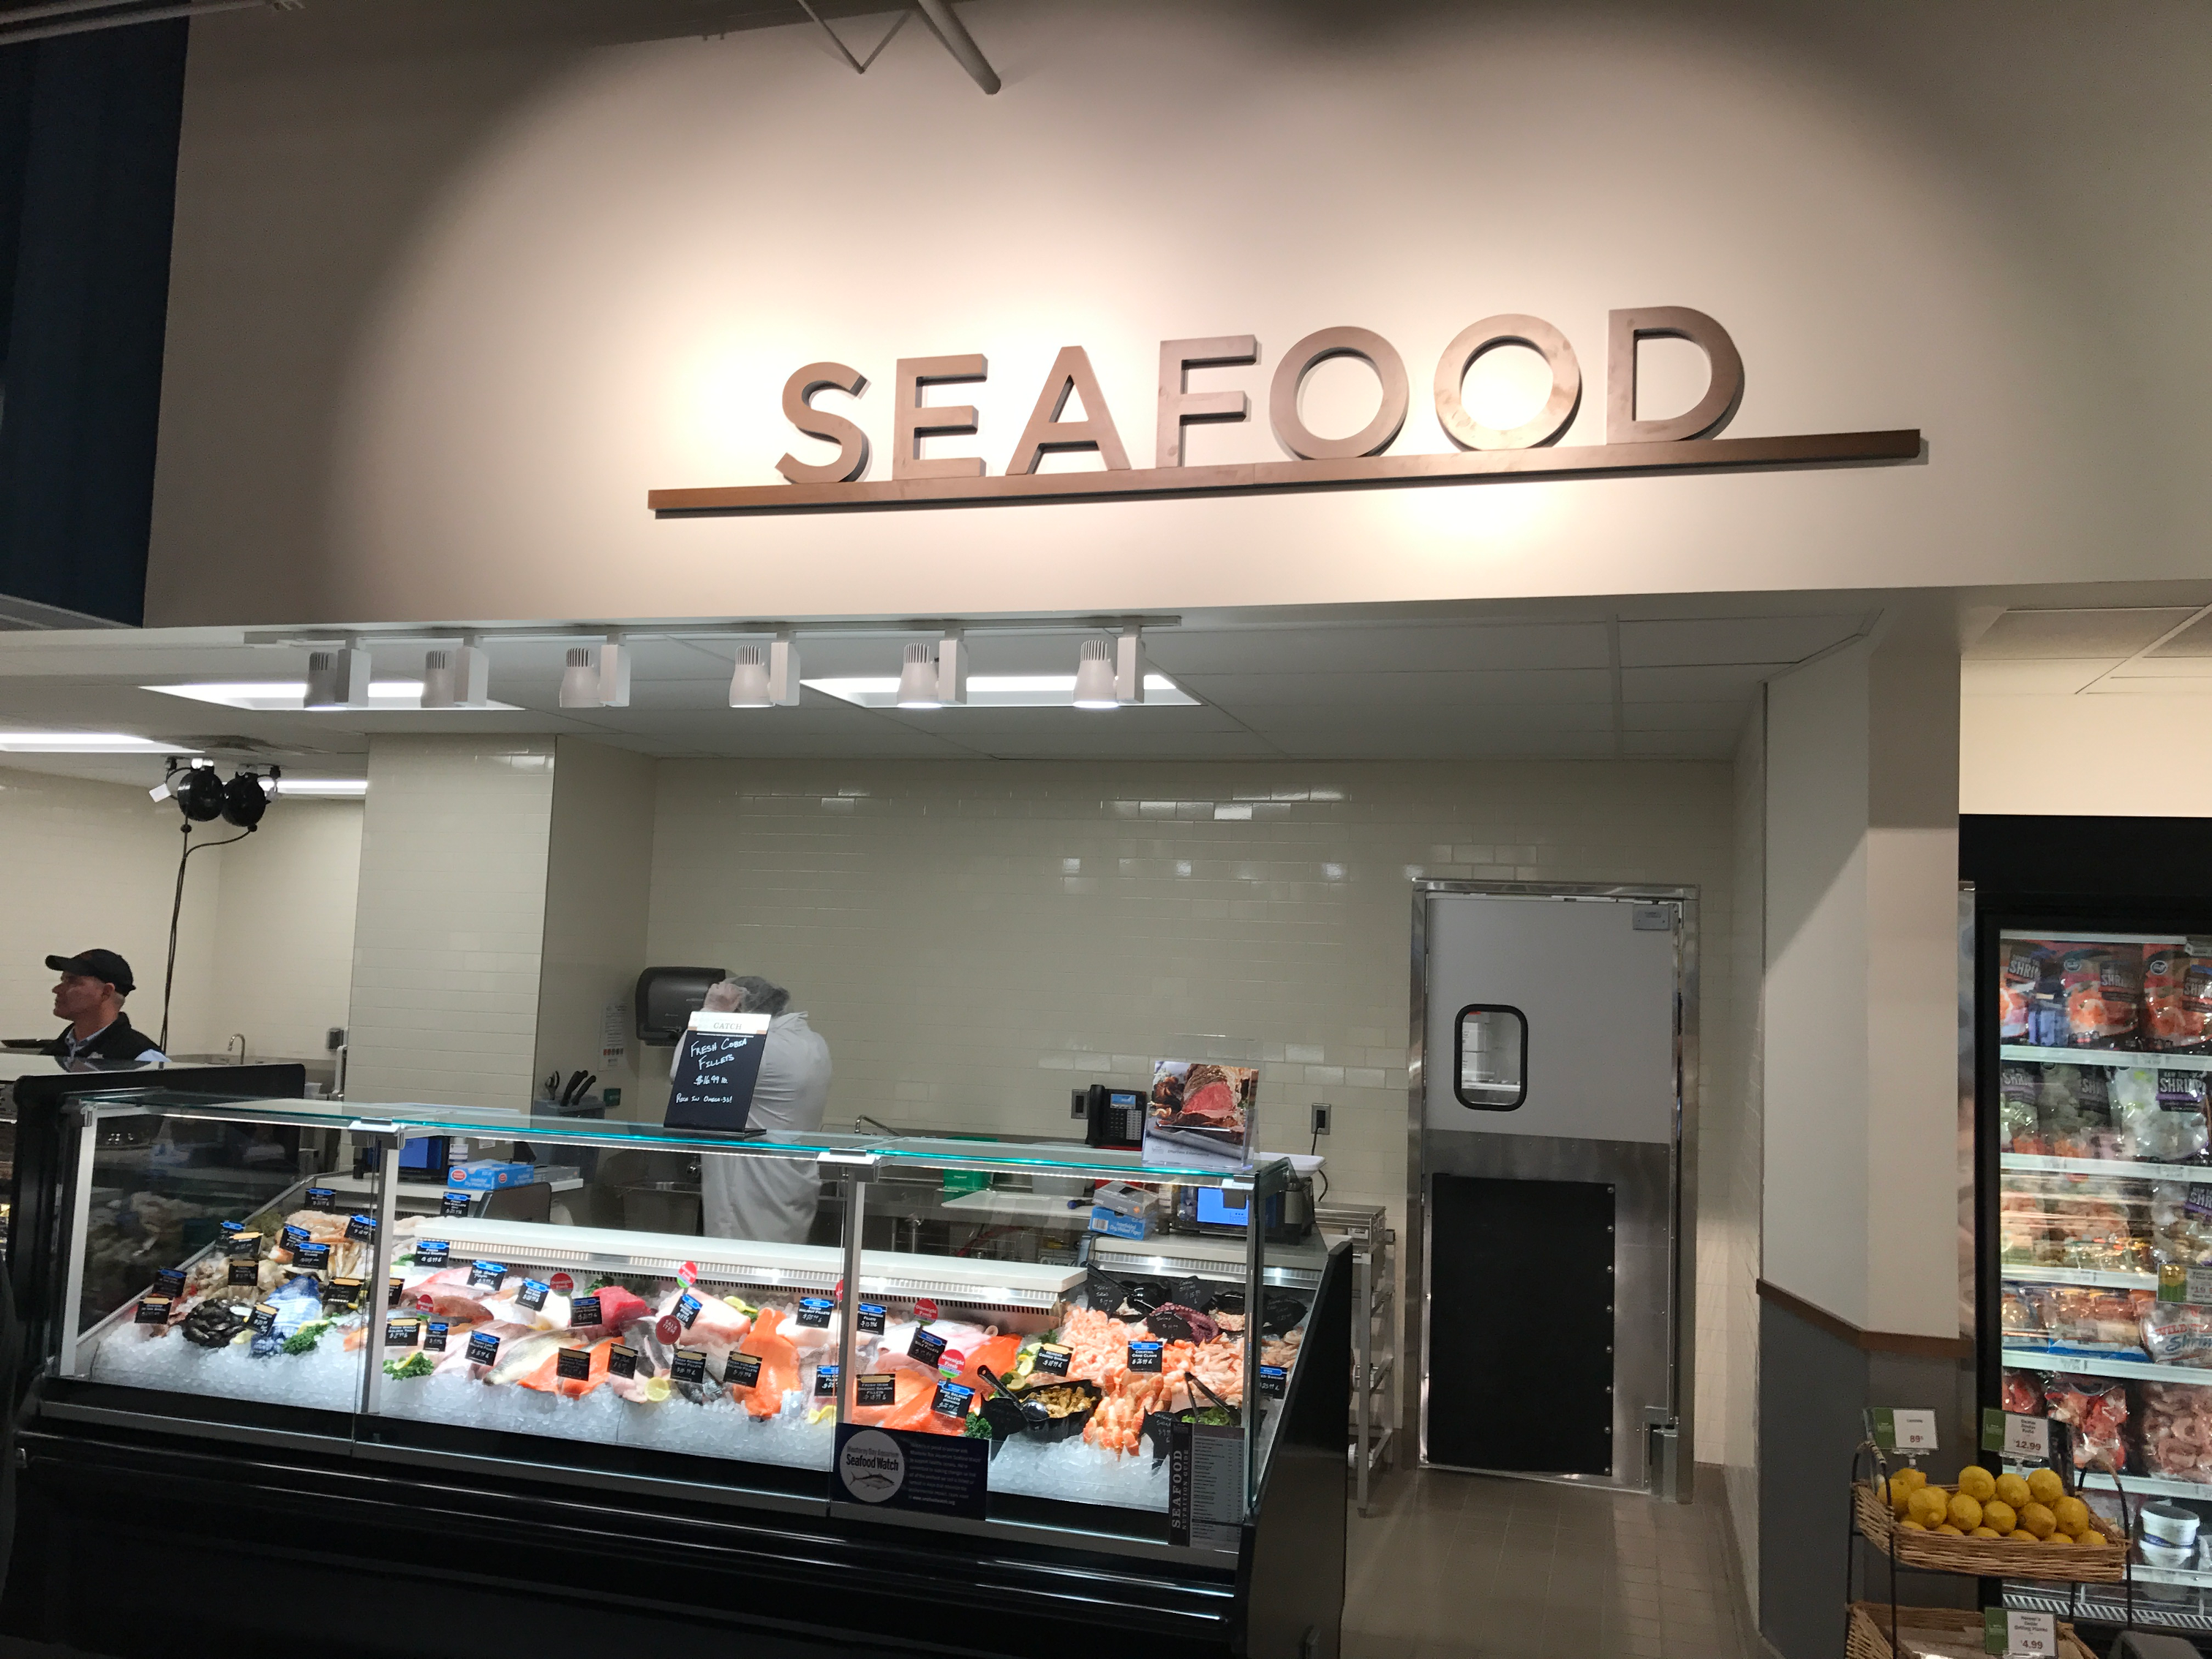 Seafood-Sign-2